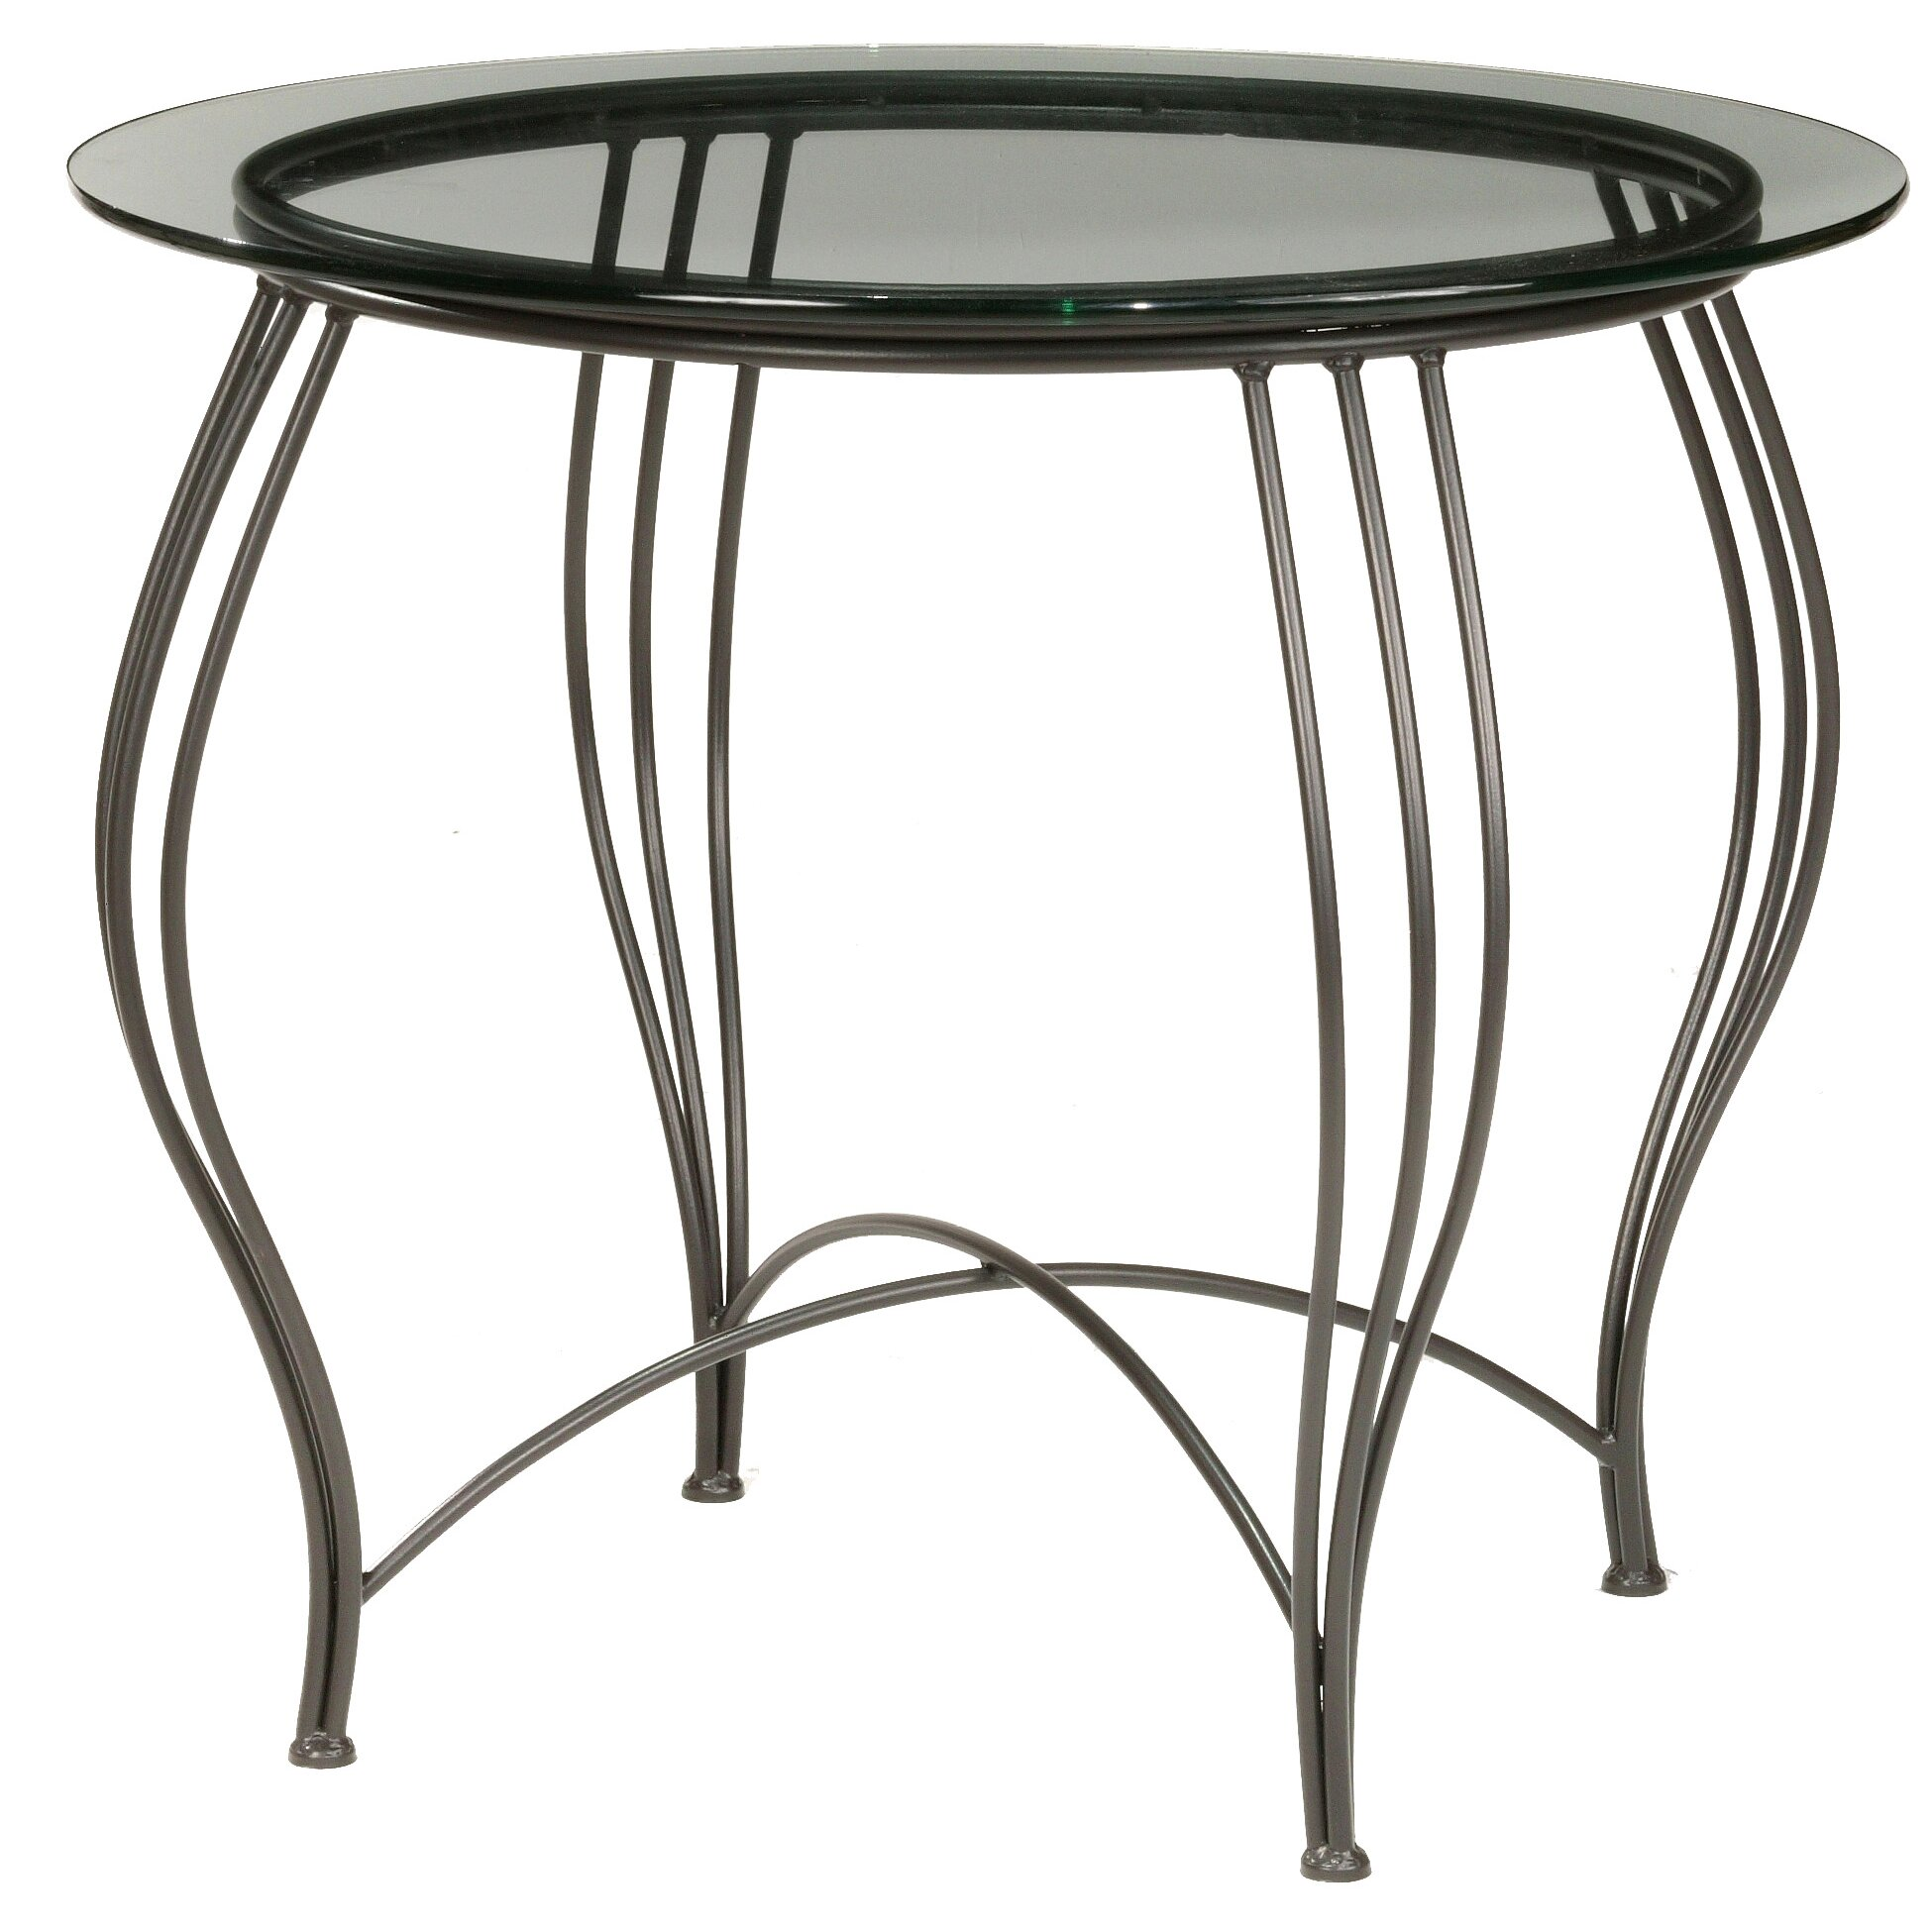 Stone county ironworks bella ice cream dining table wayfair for Cream dining table